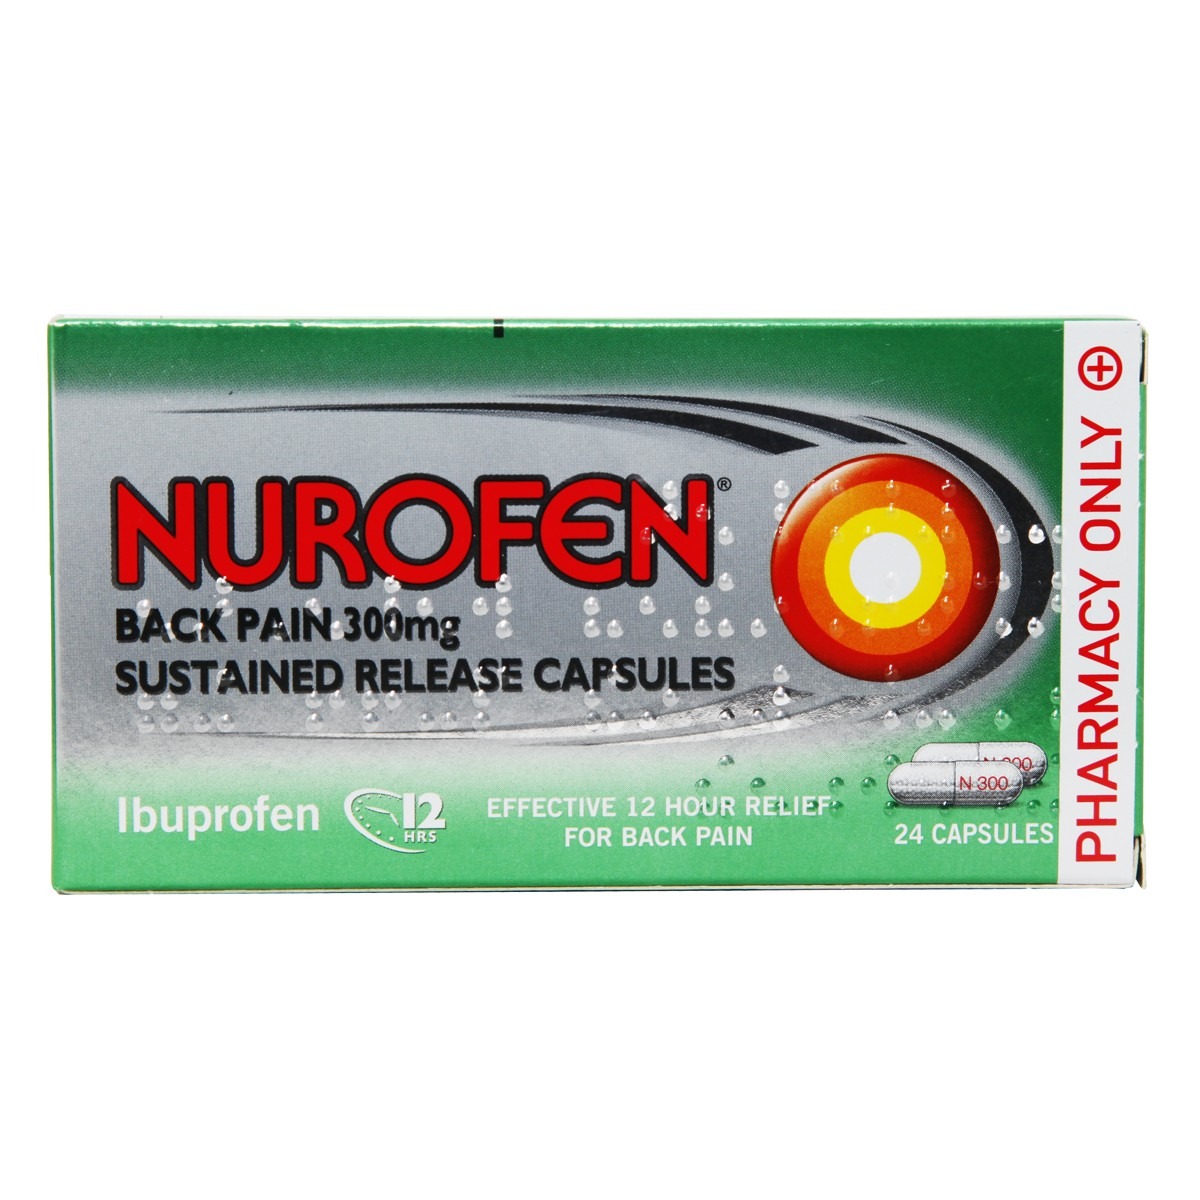 Nurofen Back Pain 300mg SR Capsules